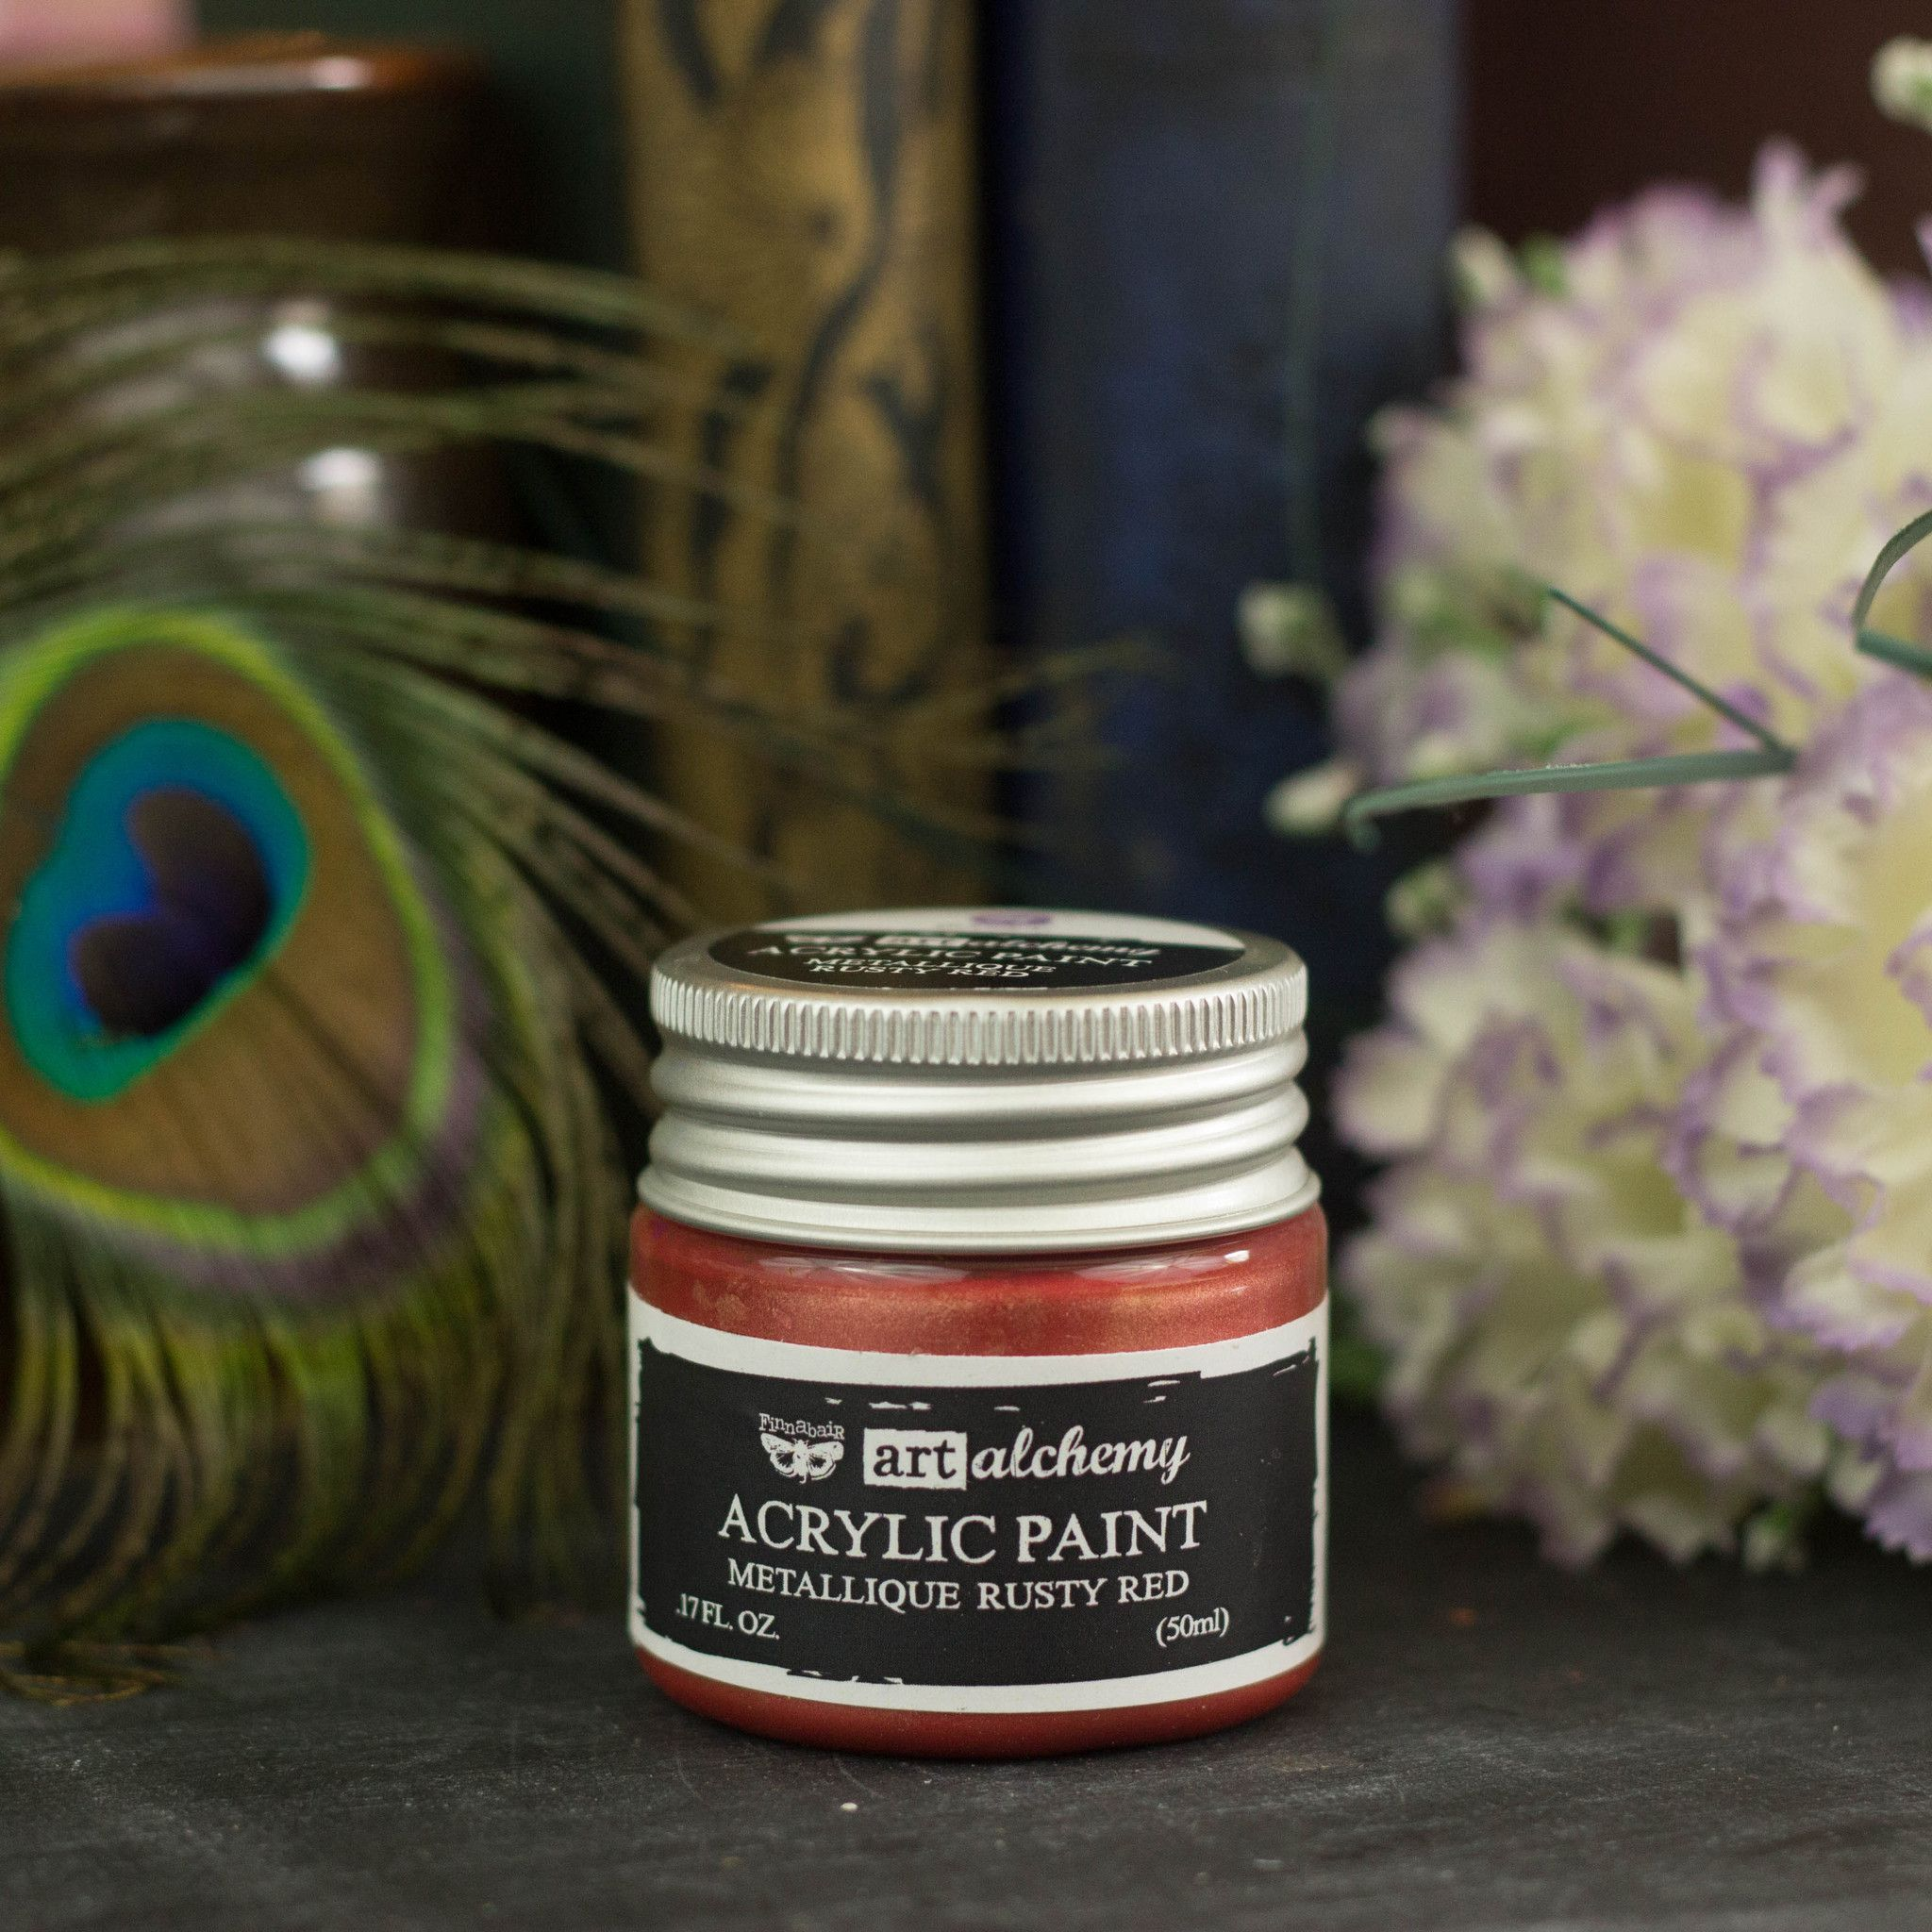 Rusty Red Art Alchemy Acrylic Paint For Metallic Shine